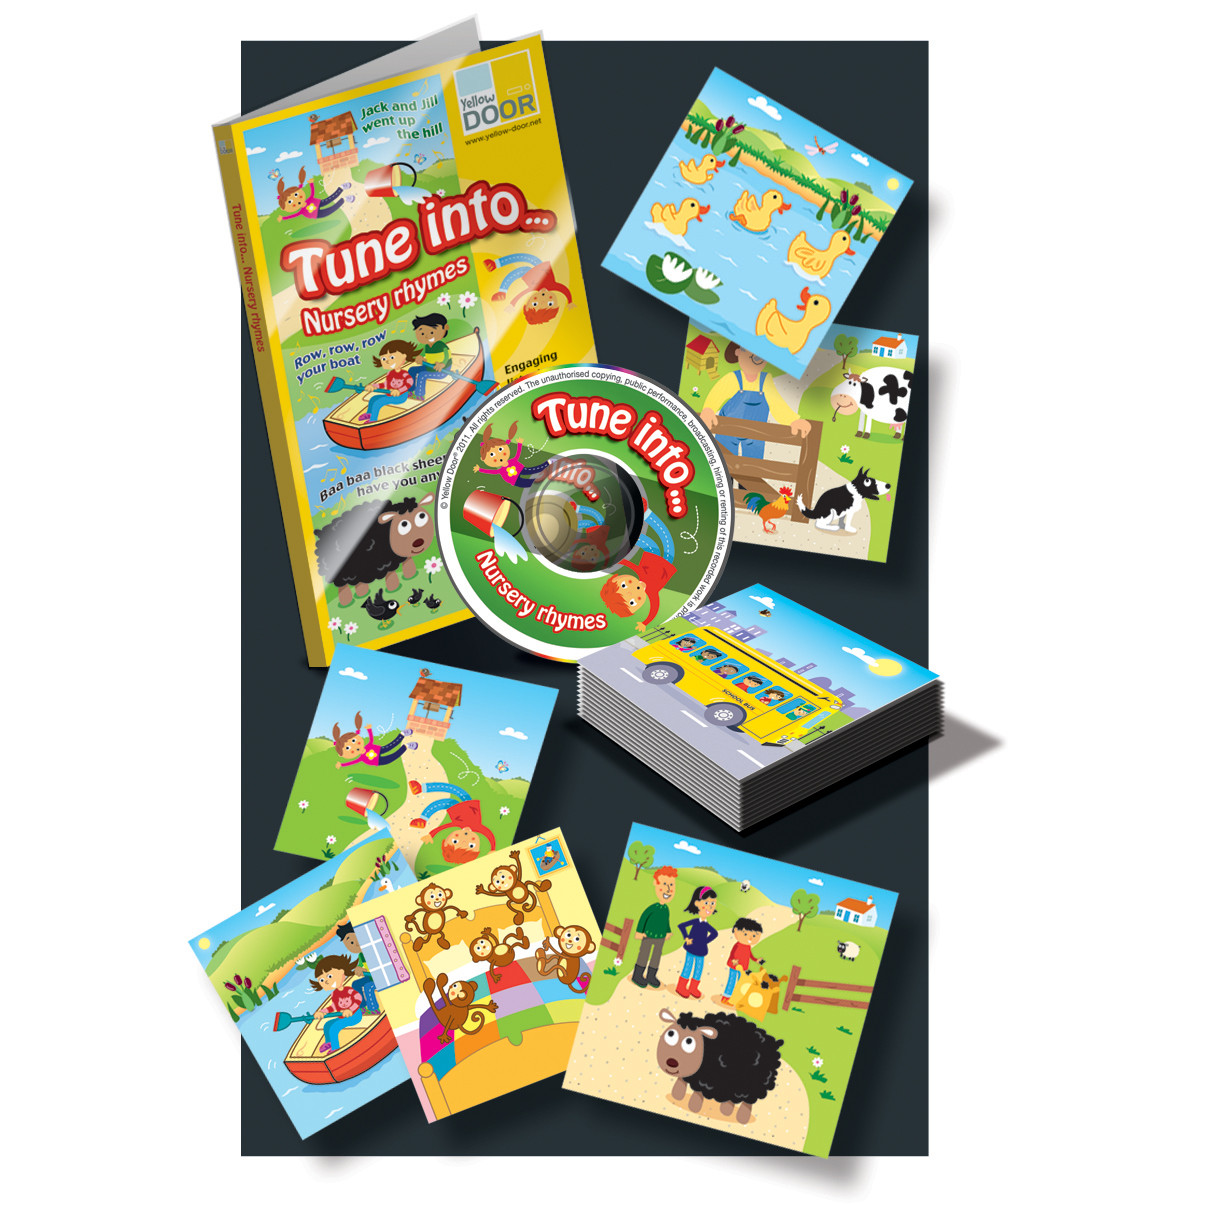 Nursery rhymes  sc 1 st  Yellow Door & Tune into\u2026 Nursery Rhymes -listening letter and sound games